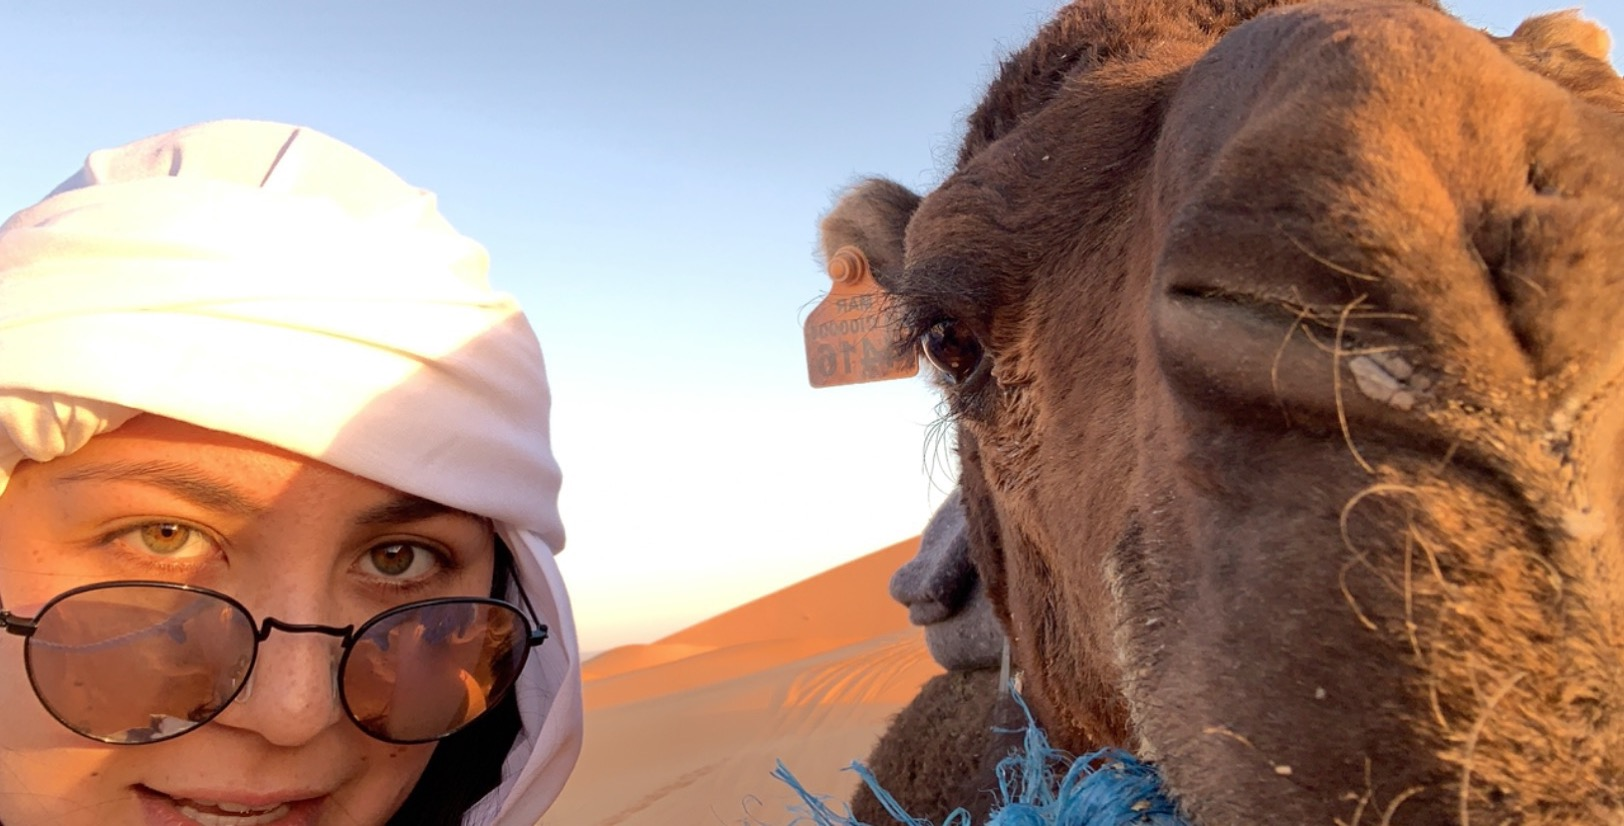 Me and my camel! Photo credit: Lee, 2019